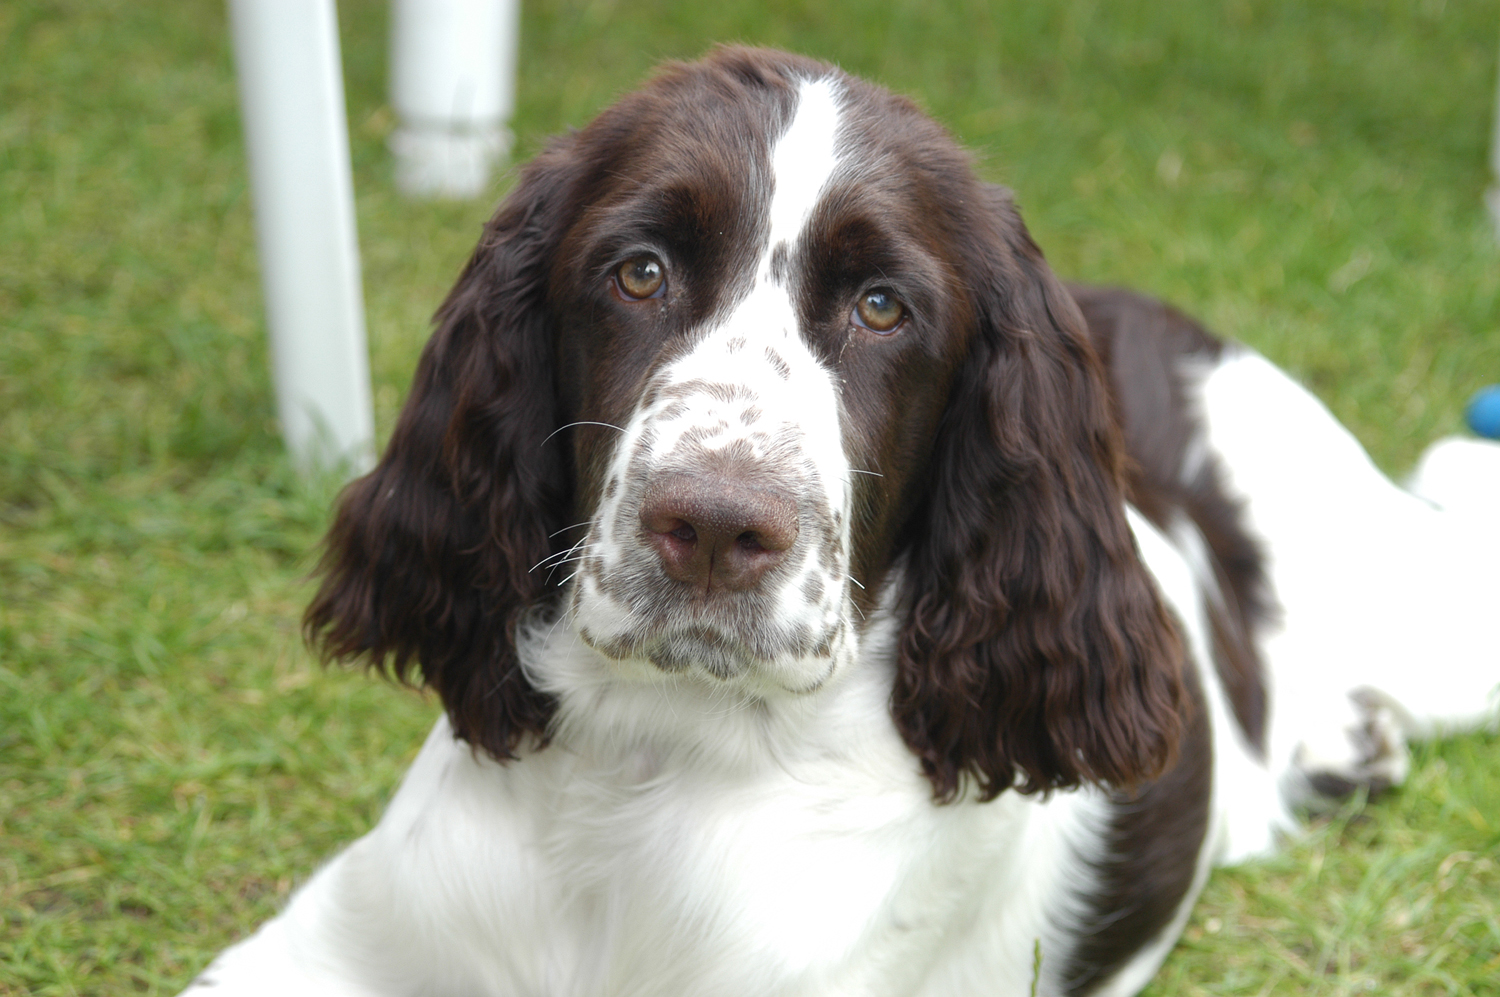 Beautiful English Springer Spaniel dog  wallpaper